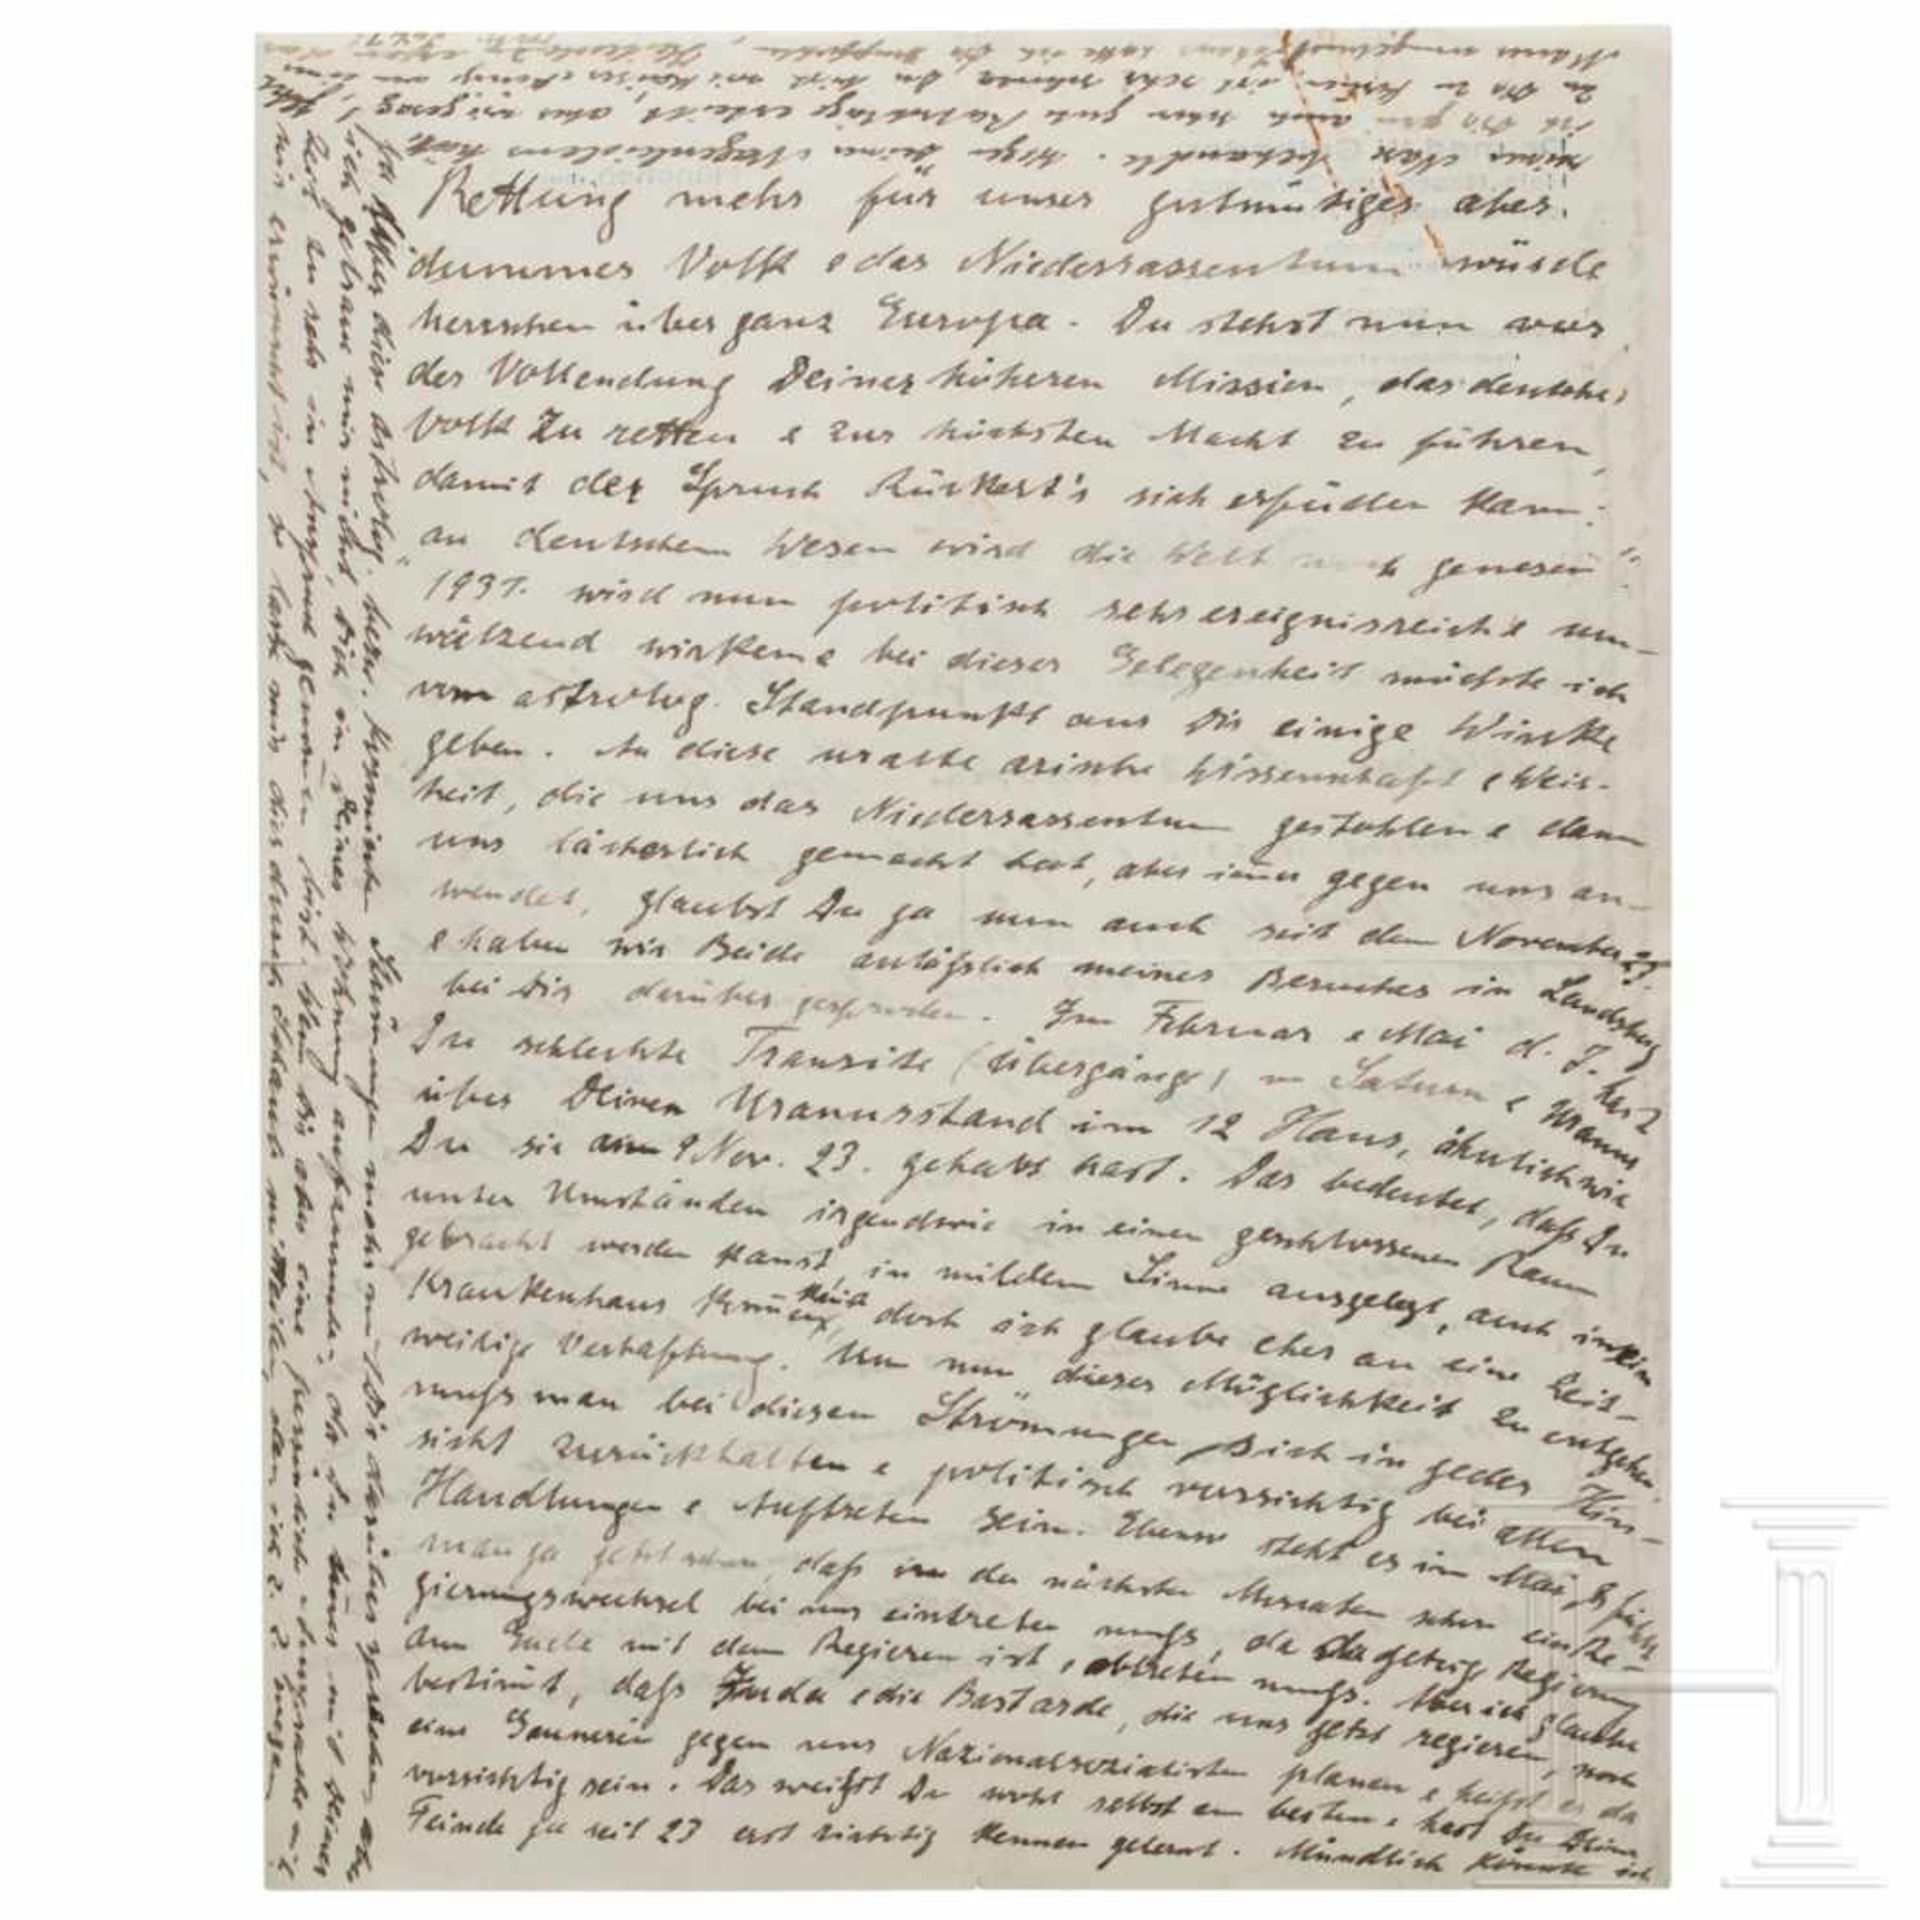 Los 6019 - Dr. Wilhelm Gutberlet (1870 - 1933) - a New-Years letter to Hitler, dated December 31, 1930An